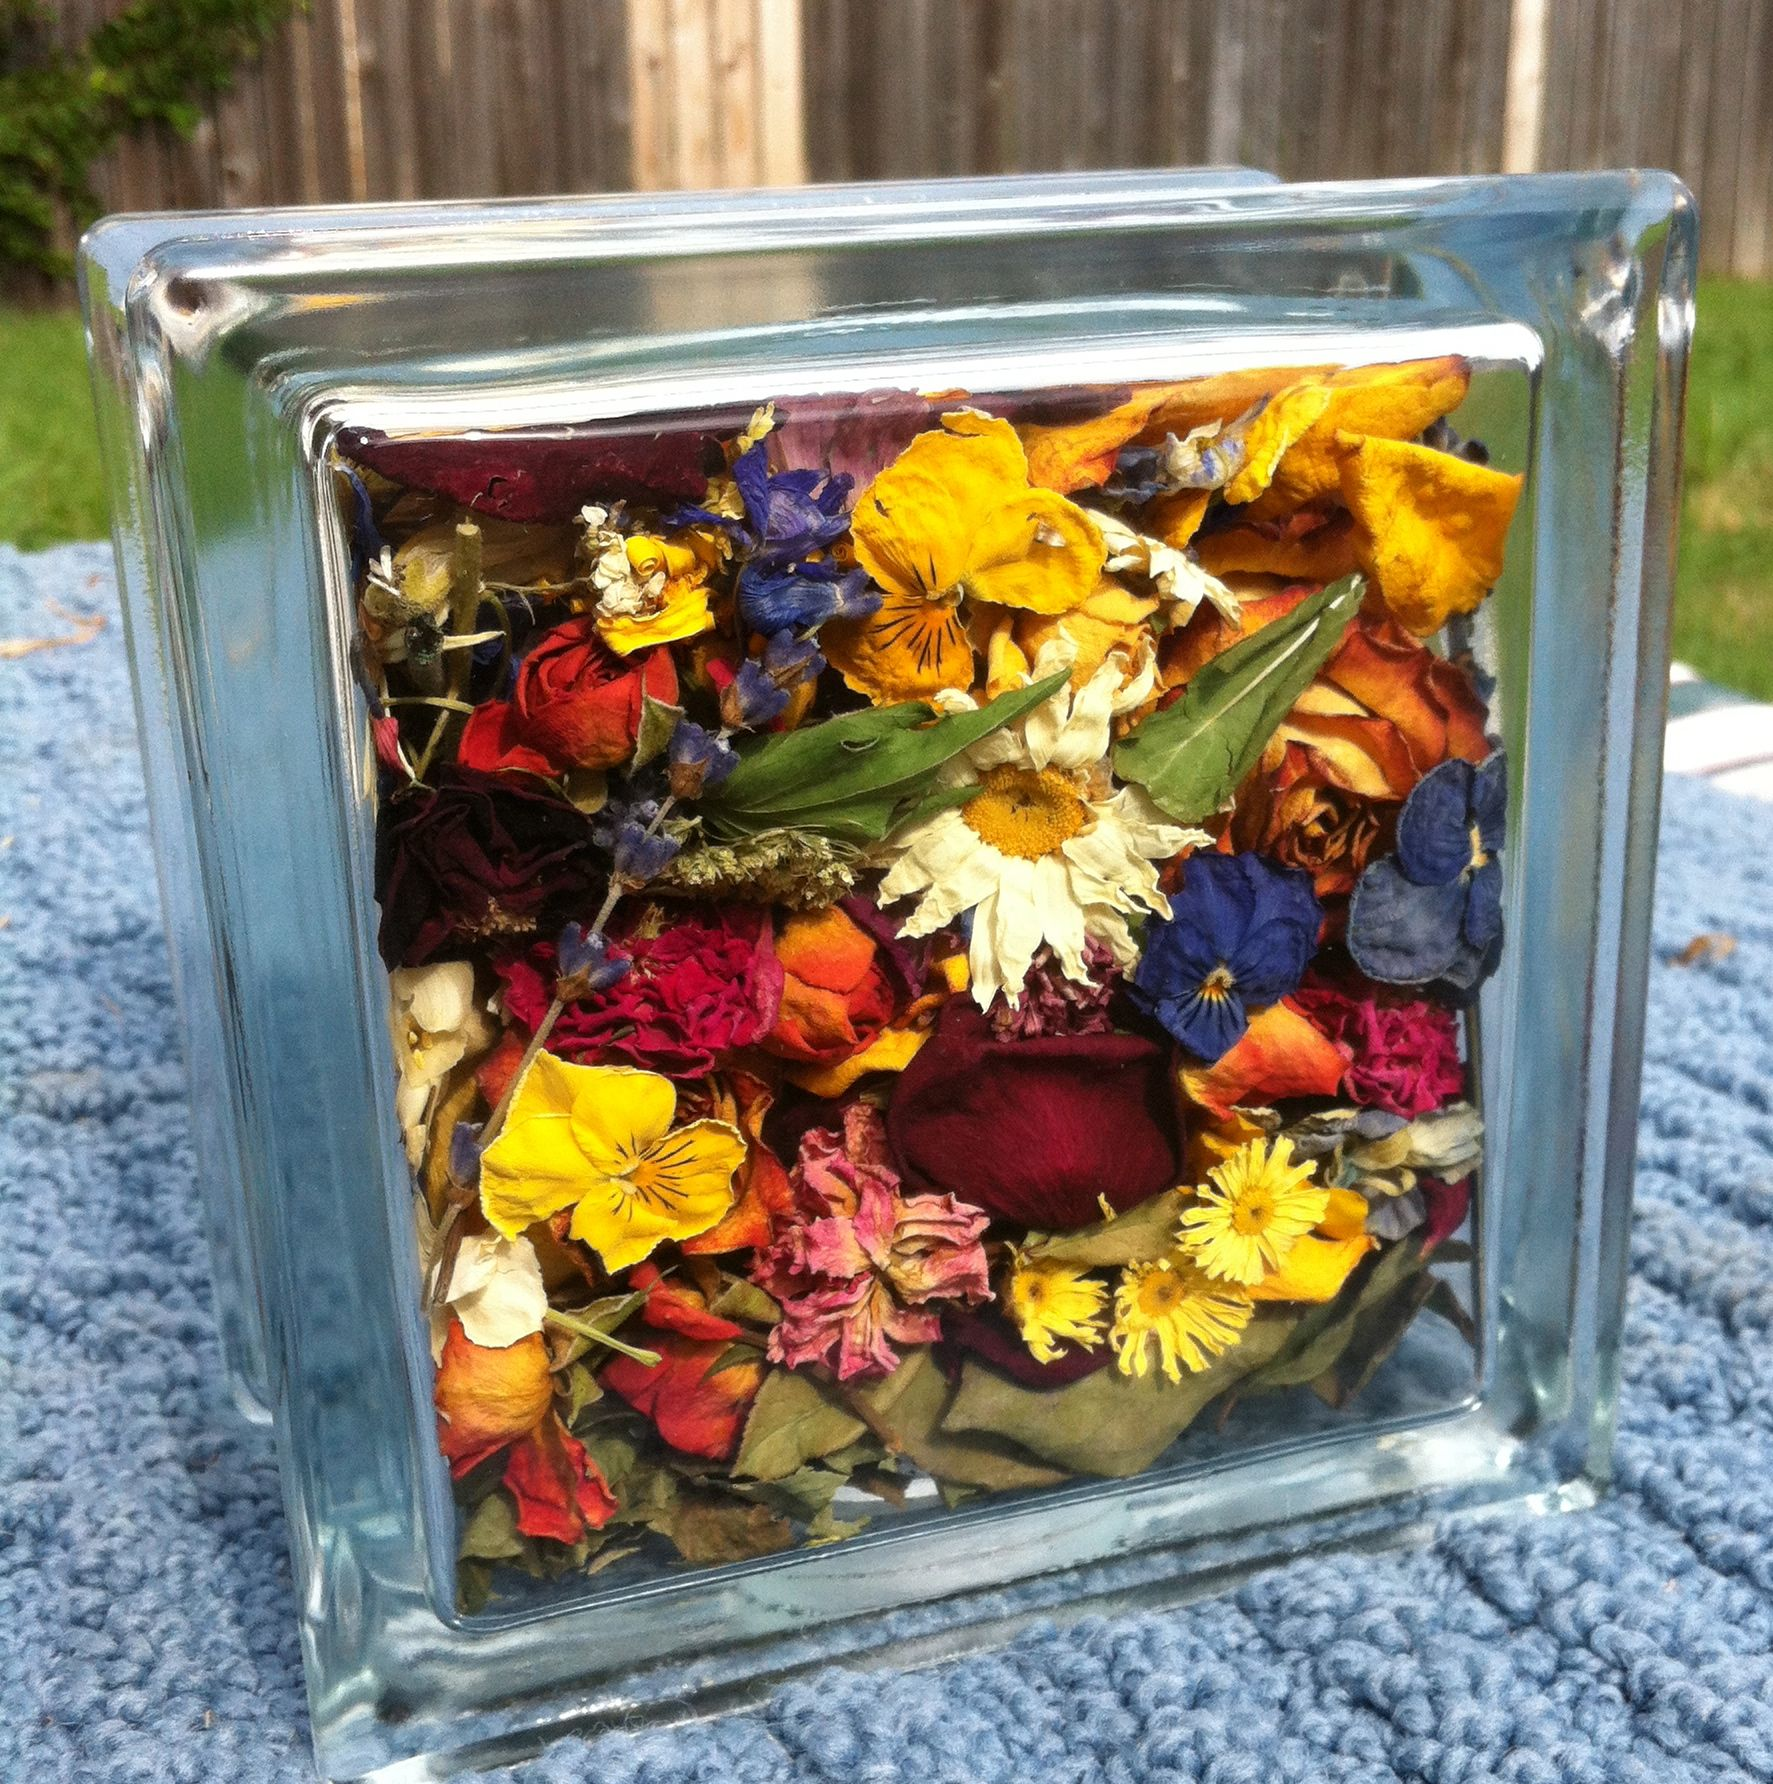 Cool way to save dried flowers from a favorite bouquet